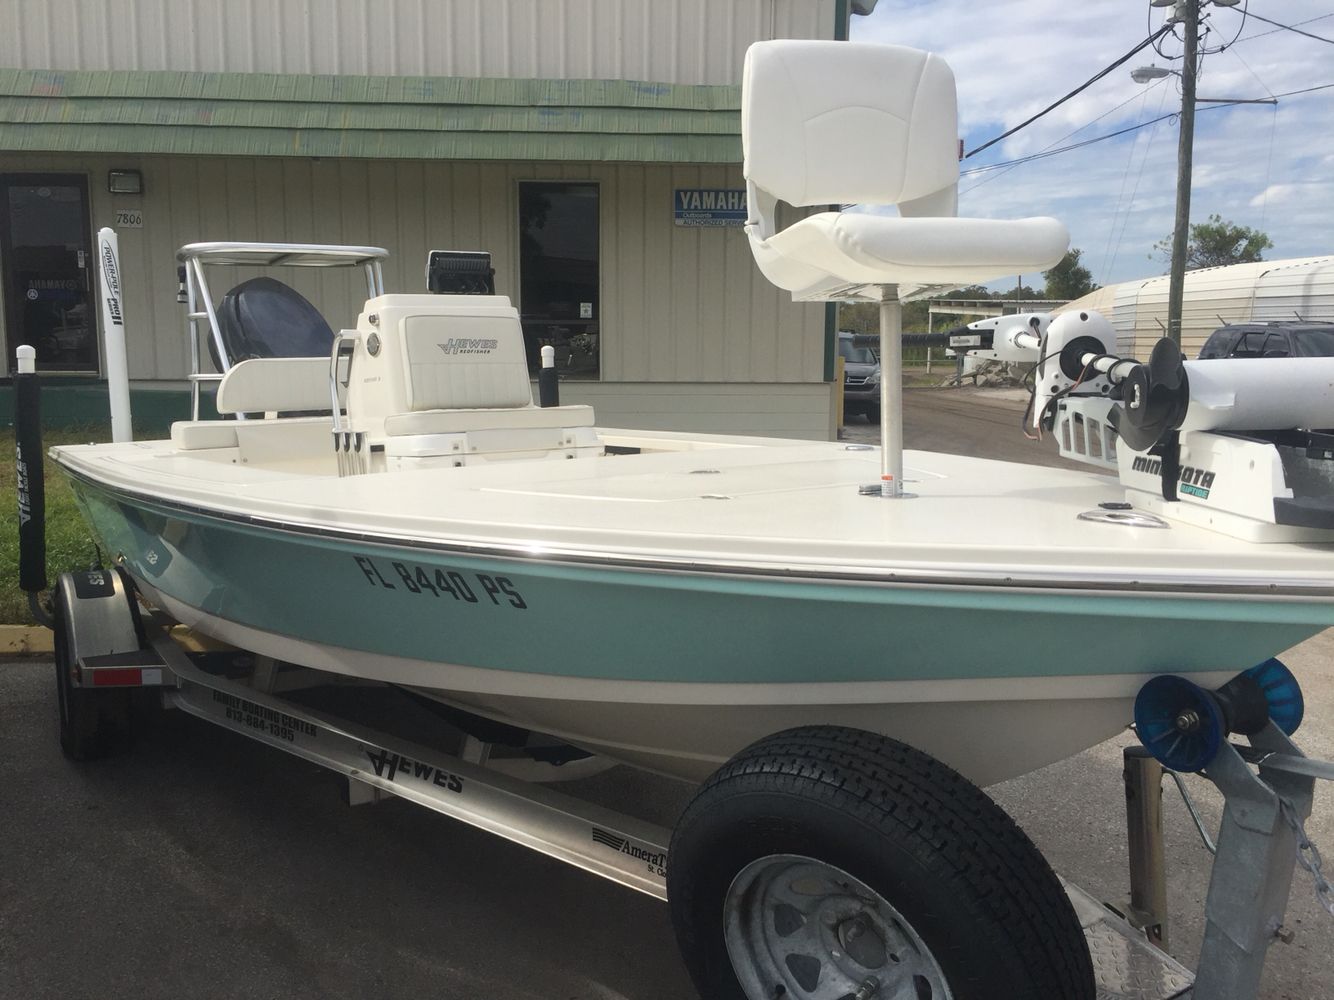 2014 Hewes Redfisher 18 18 Foot 2014 Hewes Redfisher